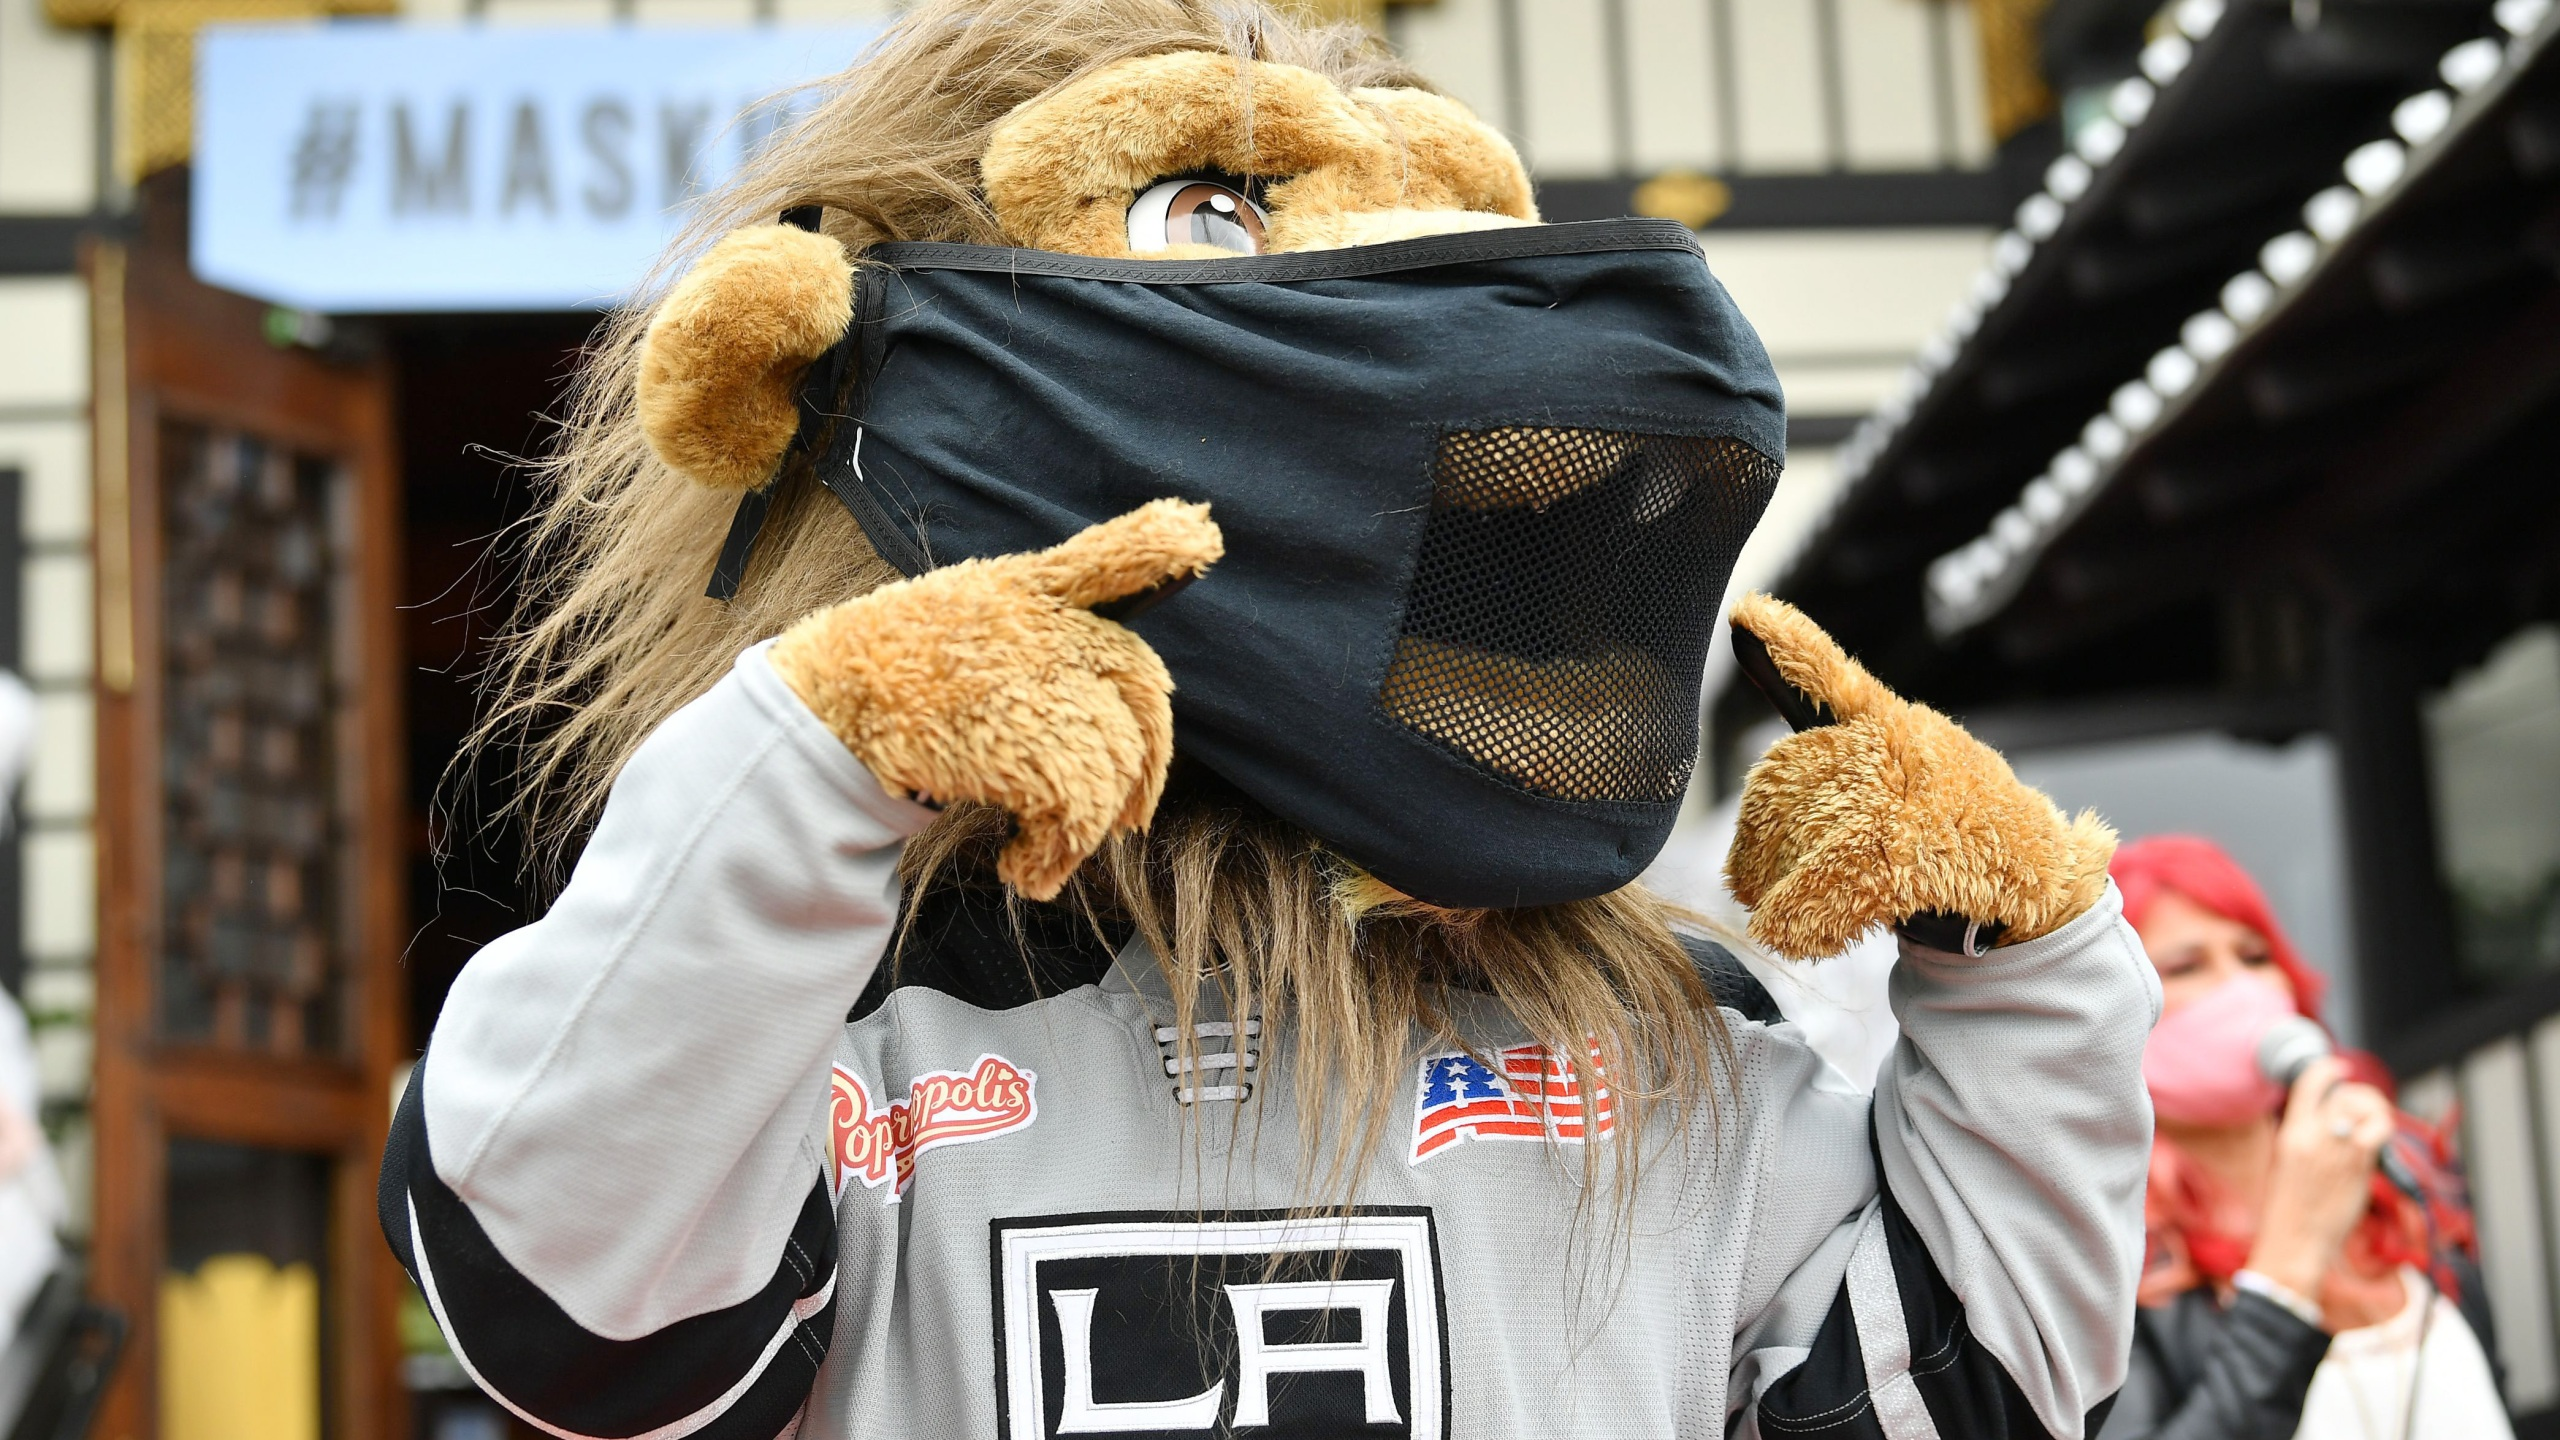 Los Angeles Kings Mascot Bailey participates in a pro-mask wearing pop-up fashion show at Yamashiro Hollywood during the COVID-19 pandemic on July 2, 2020. (Amy Sussman/Getty Images)